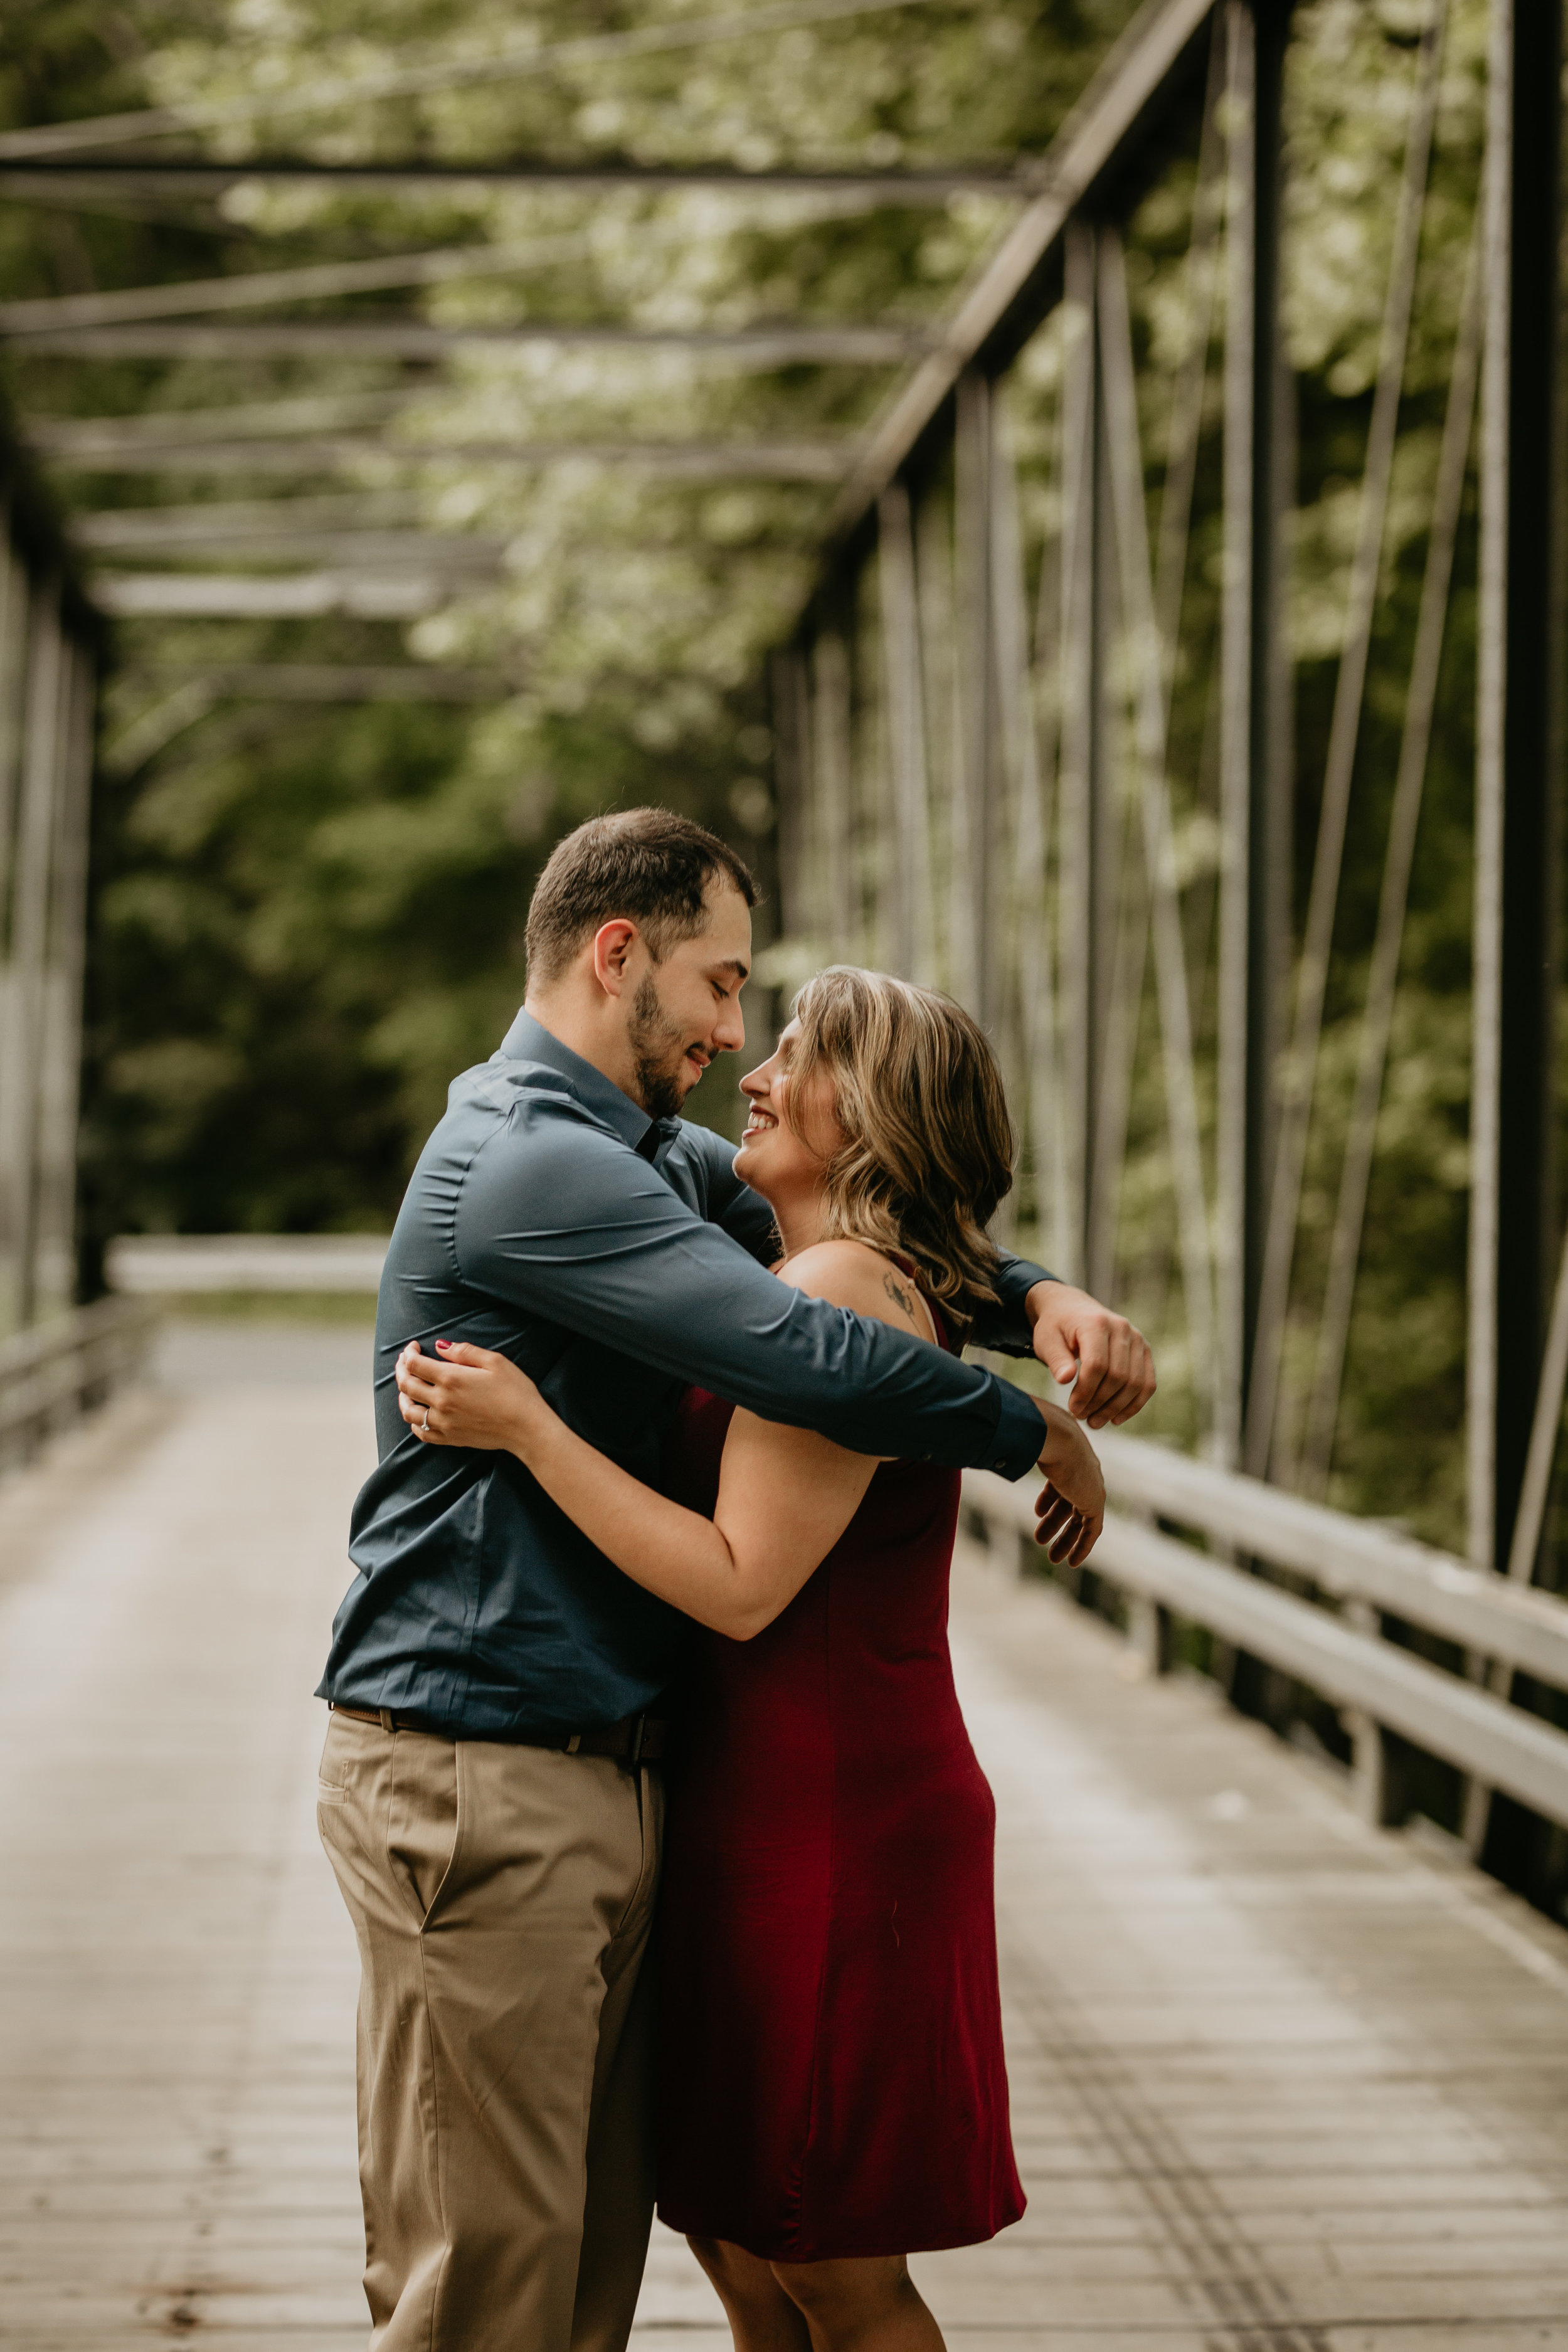 Nicole-Daacke-Photography-rock-state-park-overlook-king-queen-seat-maryland-hiking-adventure-engagement-session-photos-portraits-summer-bel-air-dog-engagement-session-8.jpg